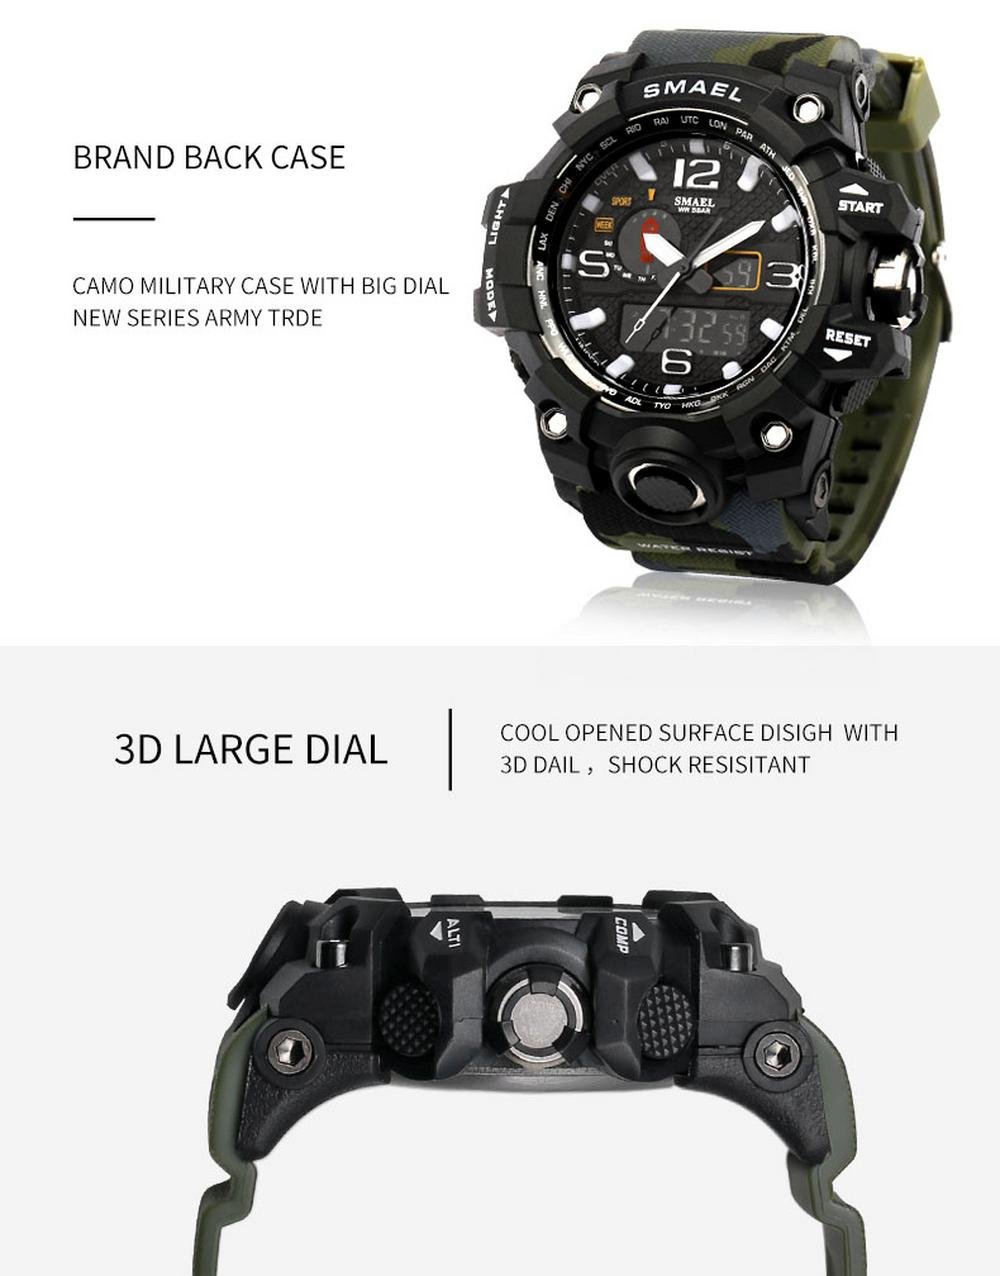 Amazon.com: IBANSE Mens Sports Analog Quartz Watch Dual Display Waterproof Digital Watches with LED Backlight relogio masculino El Movimiento de los ...